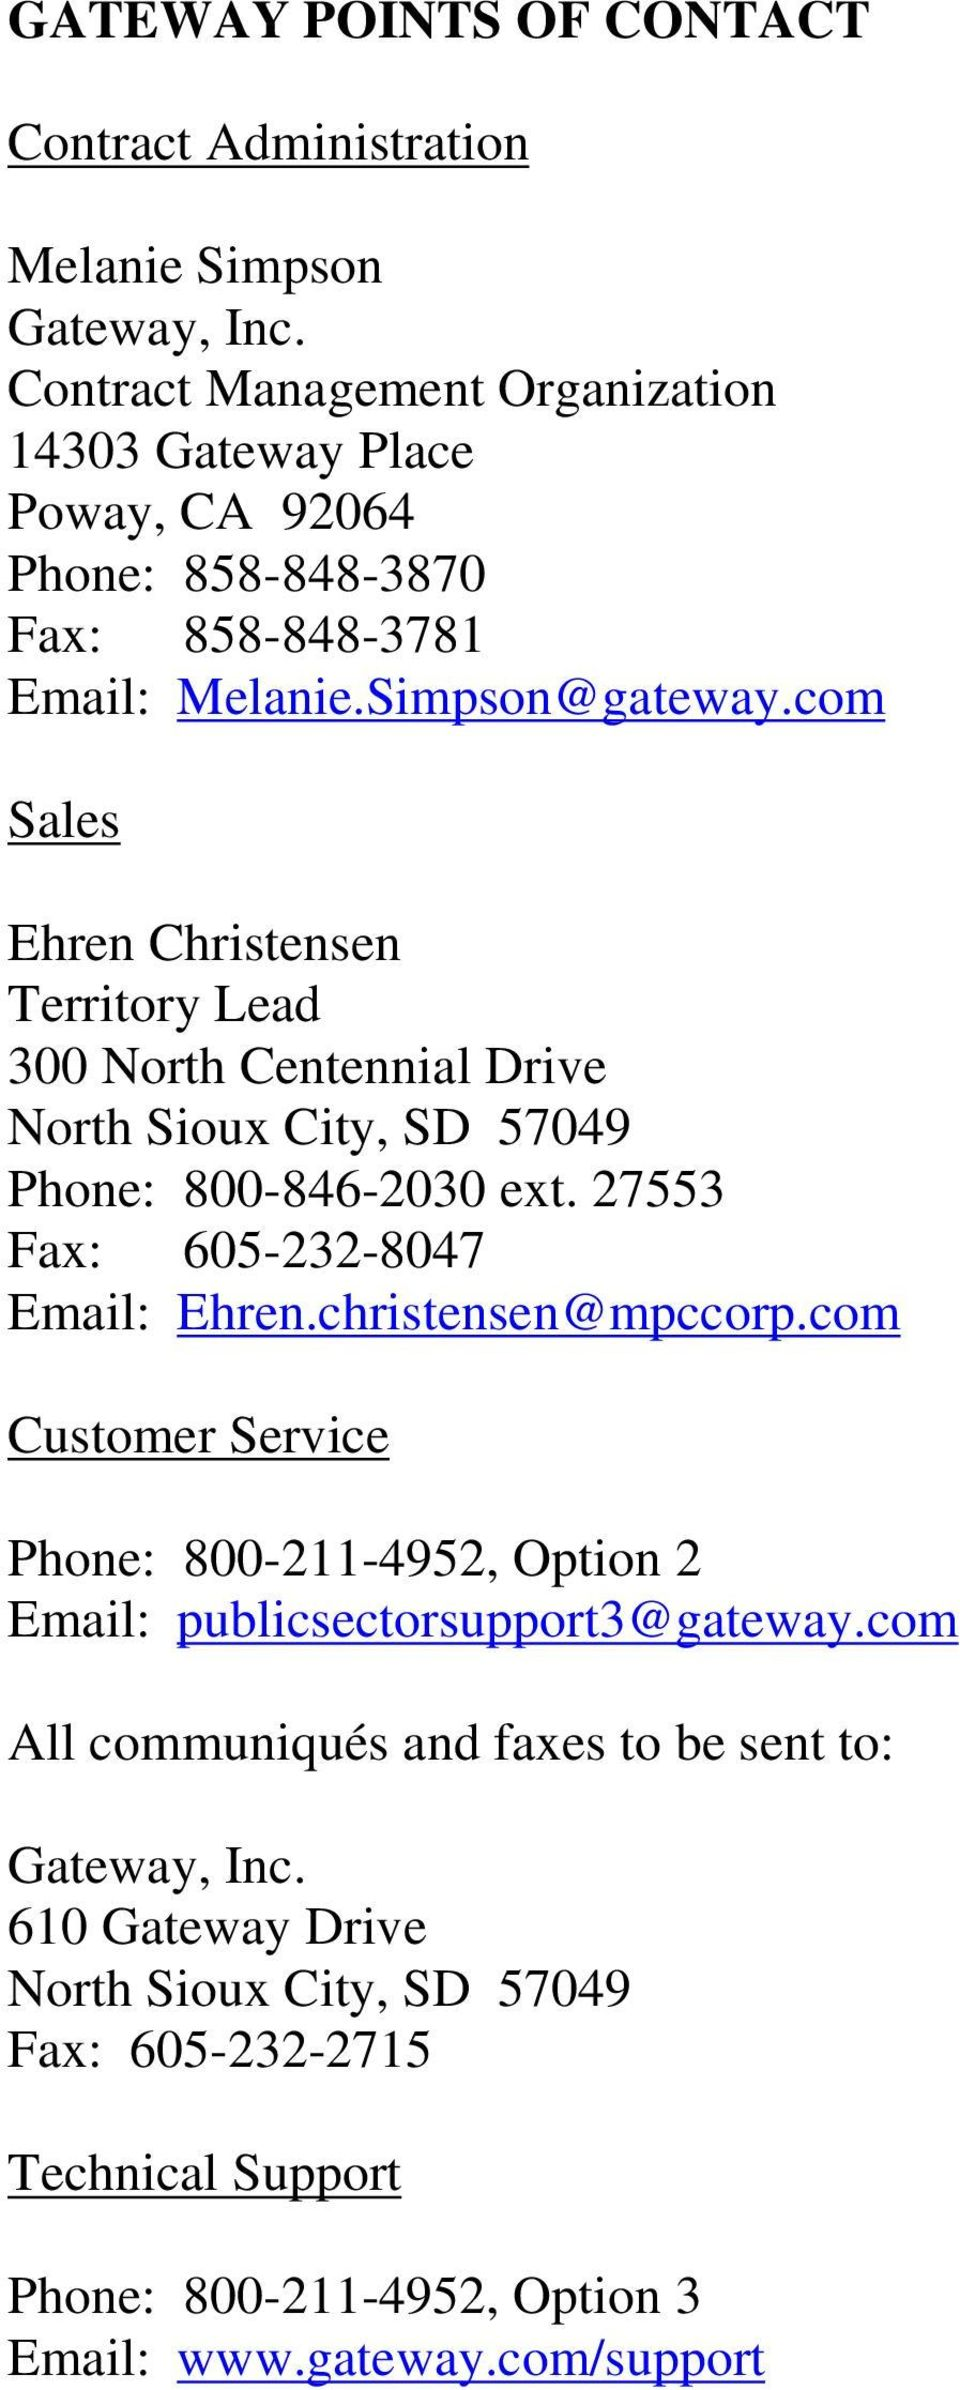 com Sales Ehren Christensen Territory Lead 300 North Centennial Drive North Sioux City, SD 57049 Phone: 800-846-2030 ext. 27553 Fax: 605-232-8047 Email: Ehren.